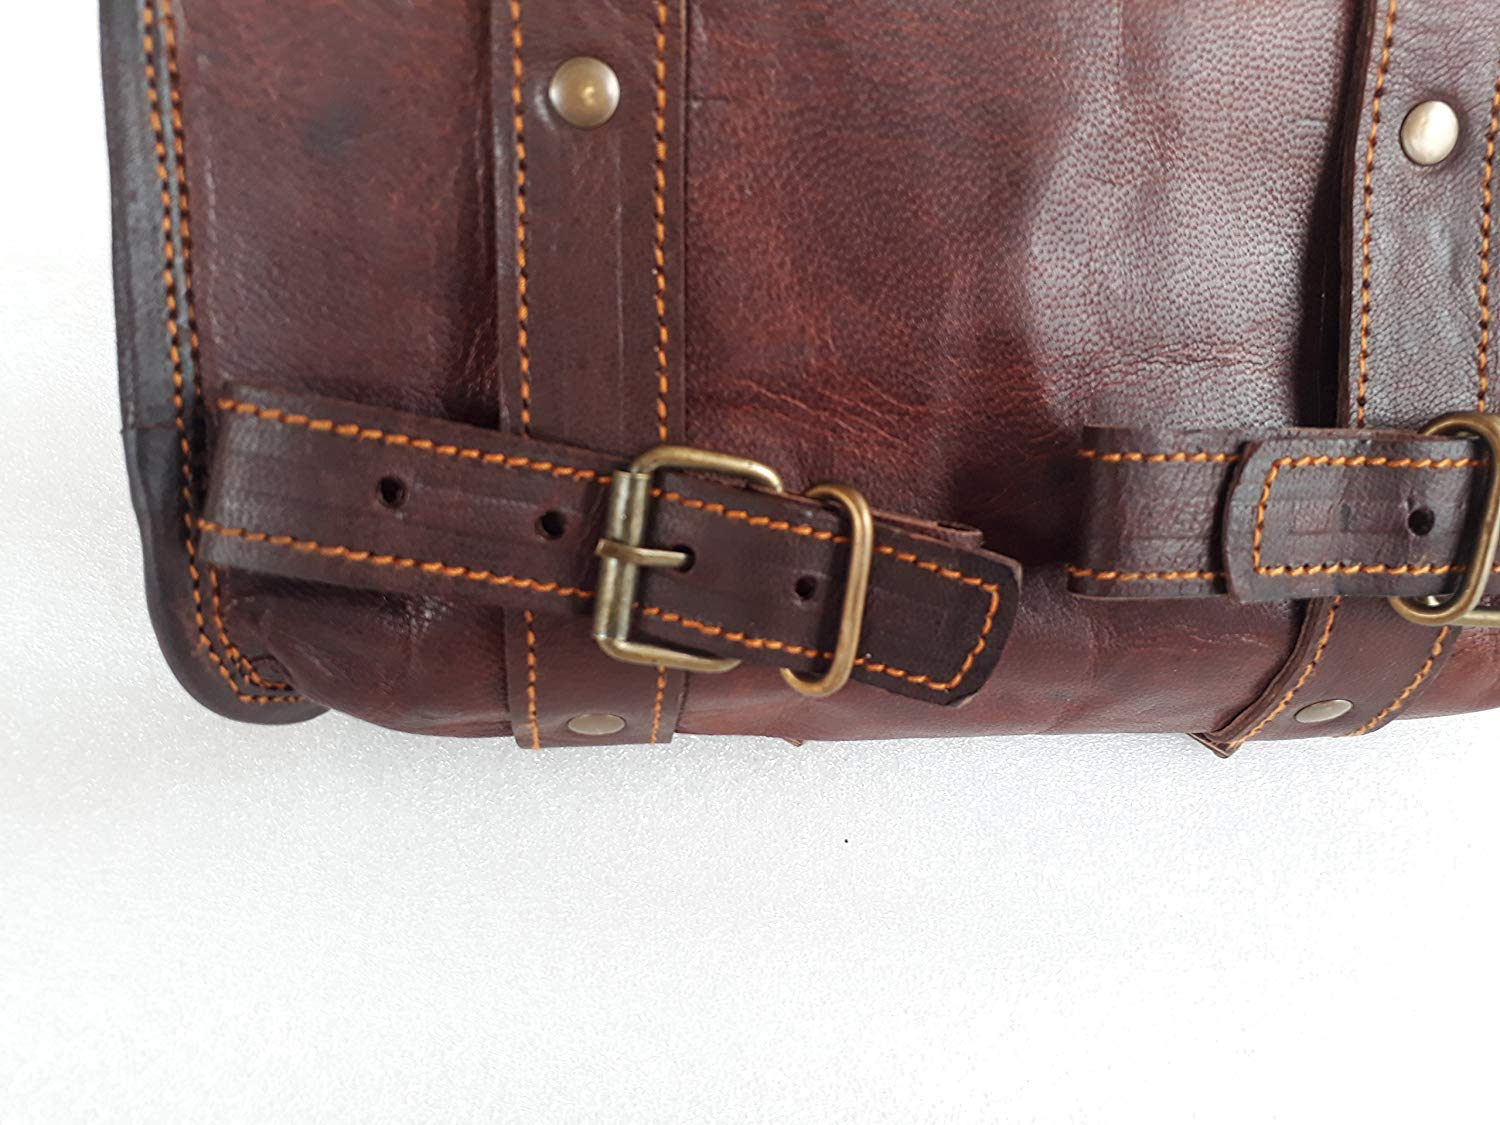 Sissy Bar-10 Inch Handmade Vintage Motorcycle Genuine Goat Leather 2 Strap Buckle Closure Tool Brown Bag Quick Release Clasp REINFORCED for handlebars,Forks